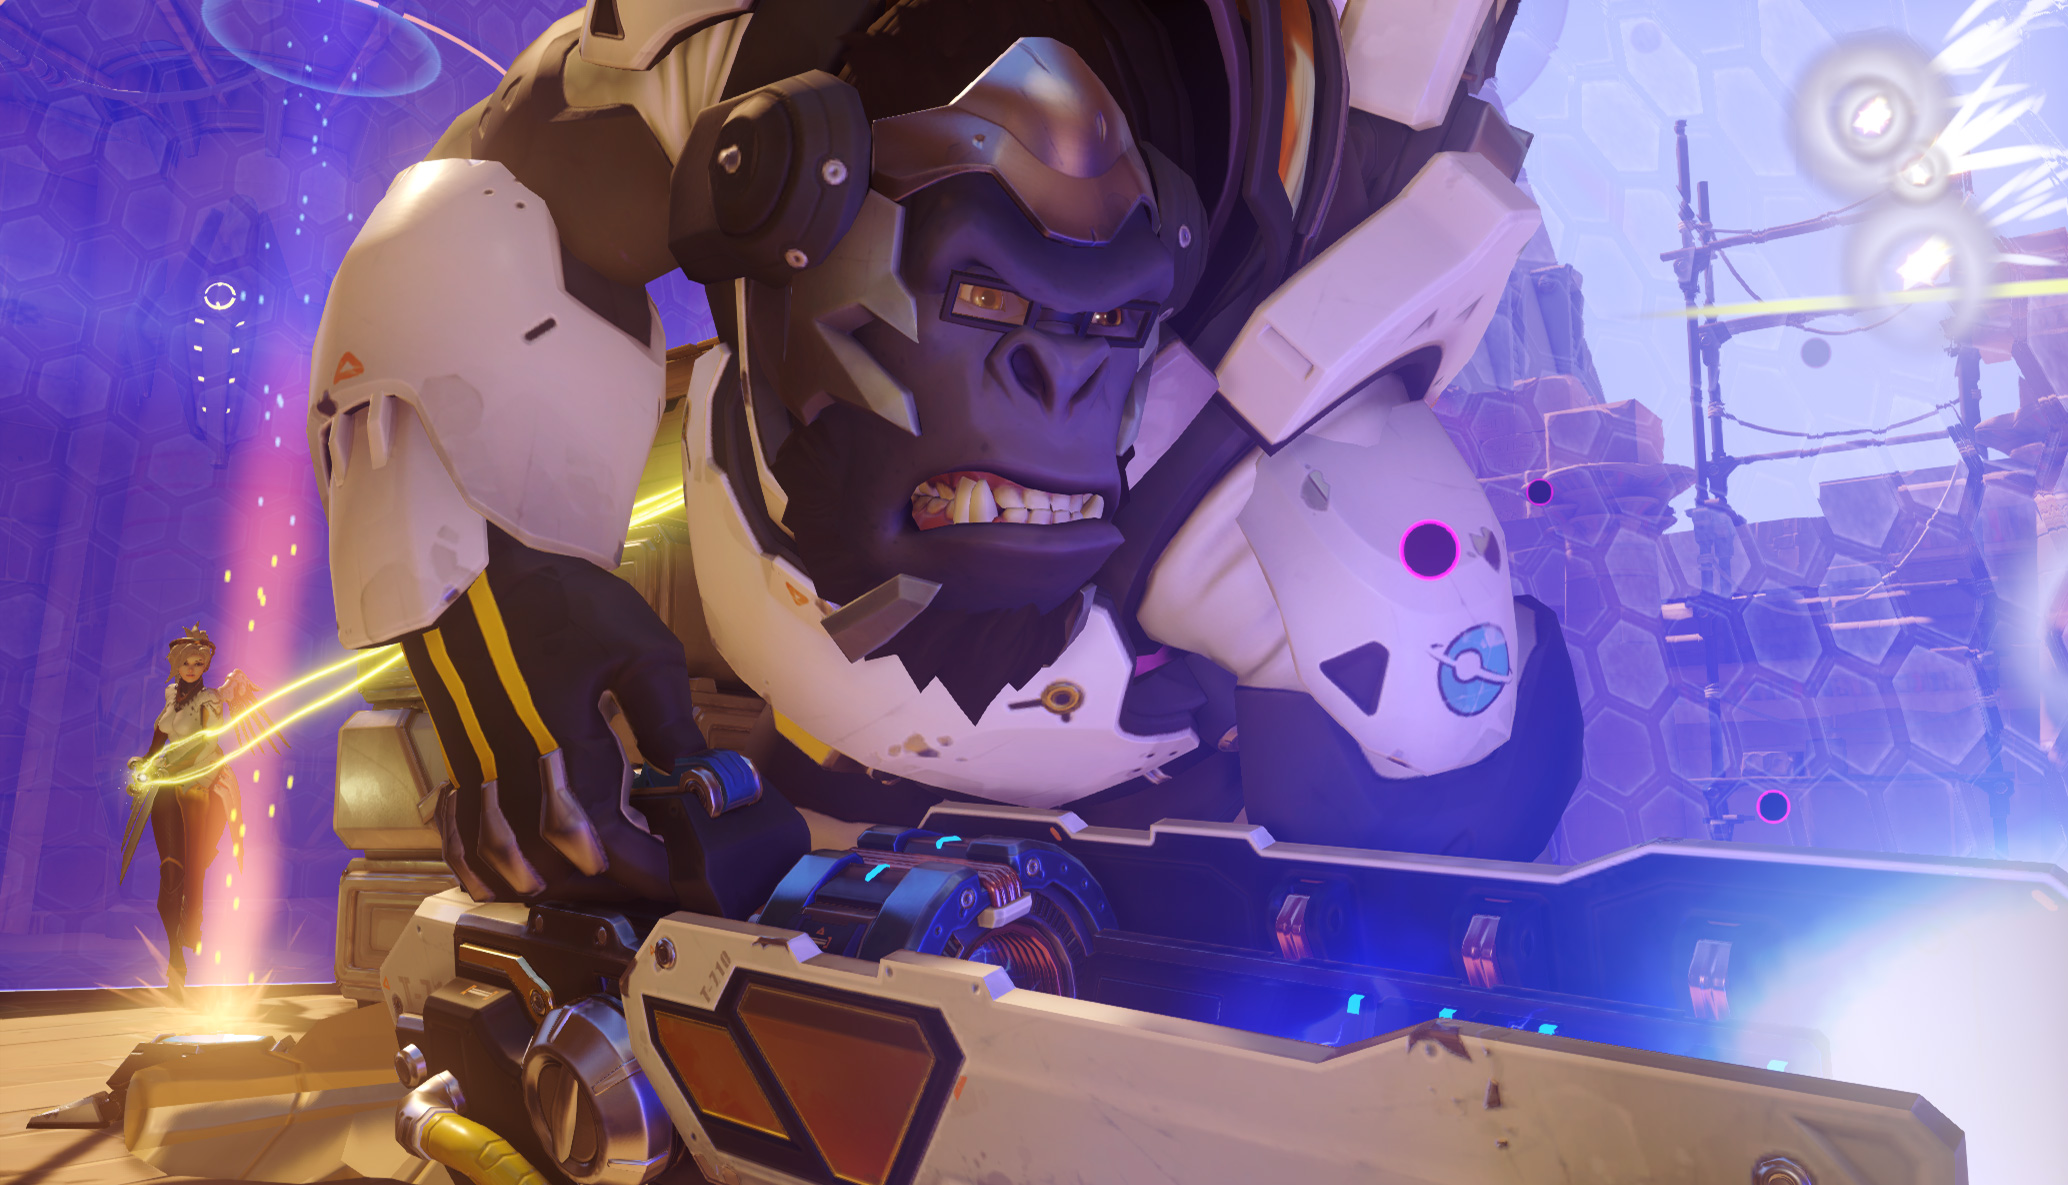 Overwatch players are exploiting custom games for XP, Blizzard is very disappointed